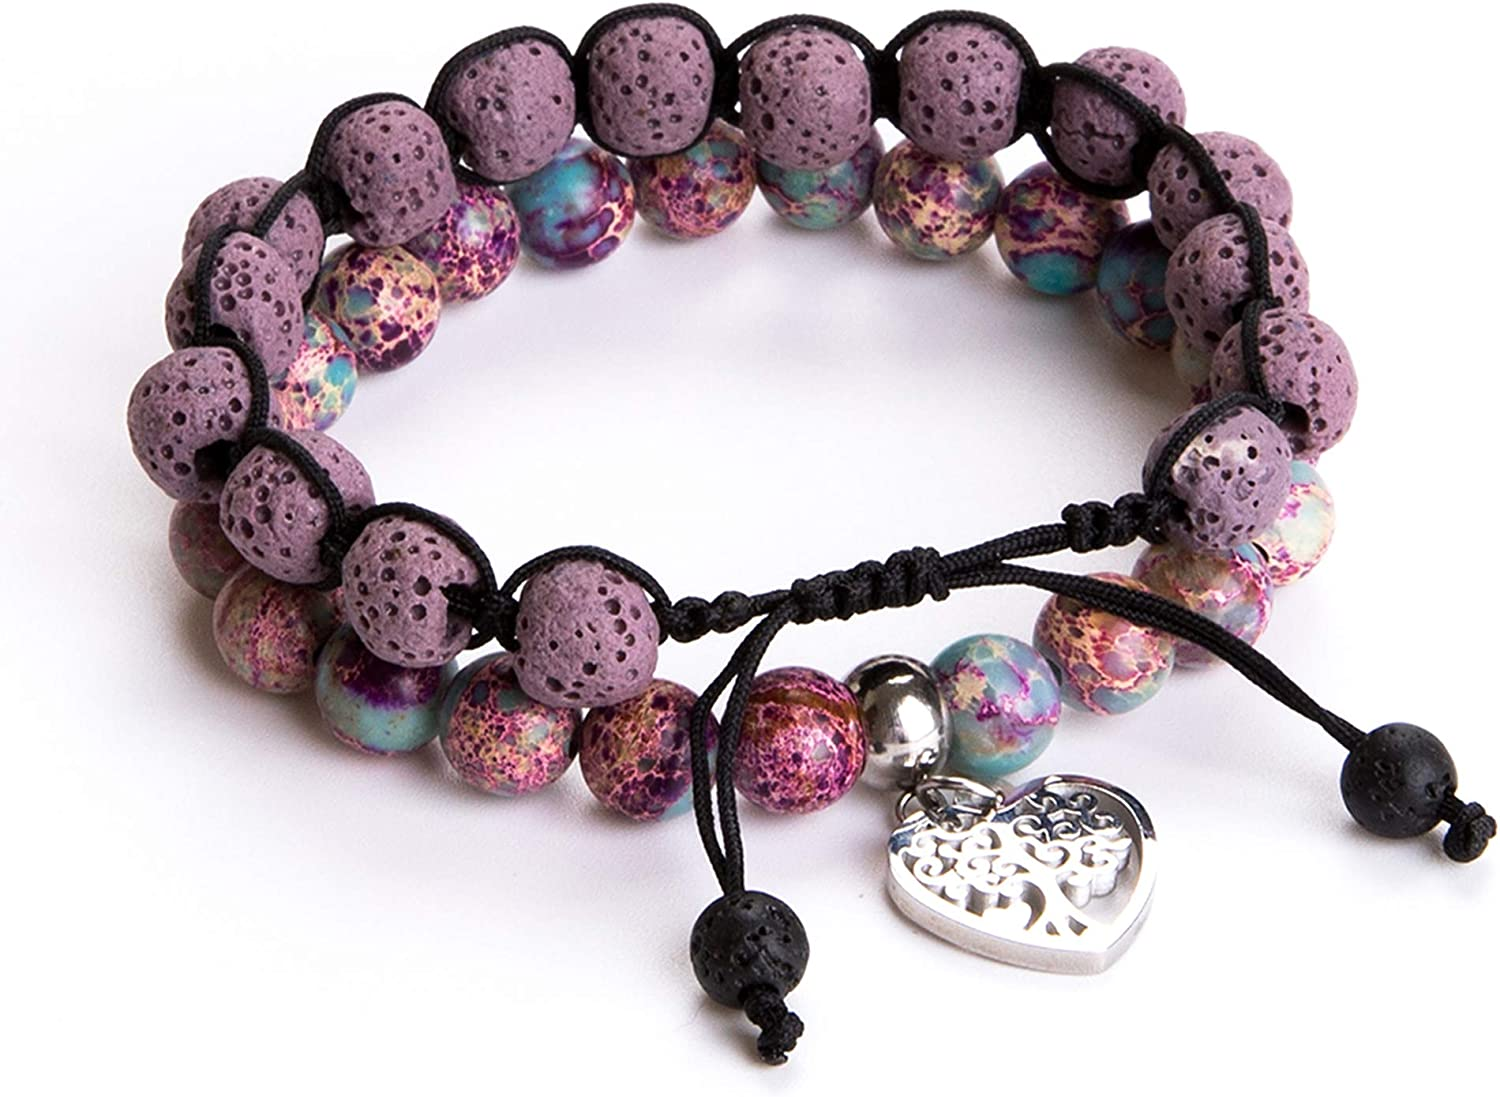 Tree of Life Bracelet - Lava Max 61% Manufacturer regenerated product OFF Stone Gemstone Oil Beaded Essential